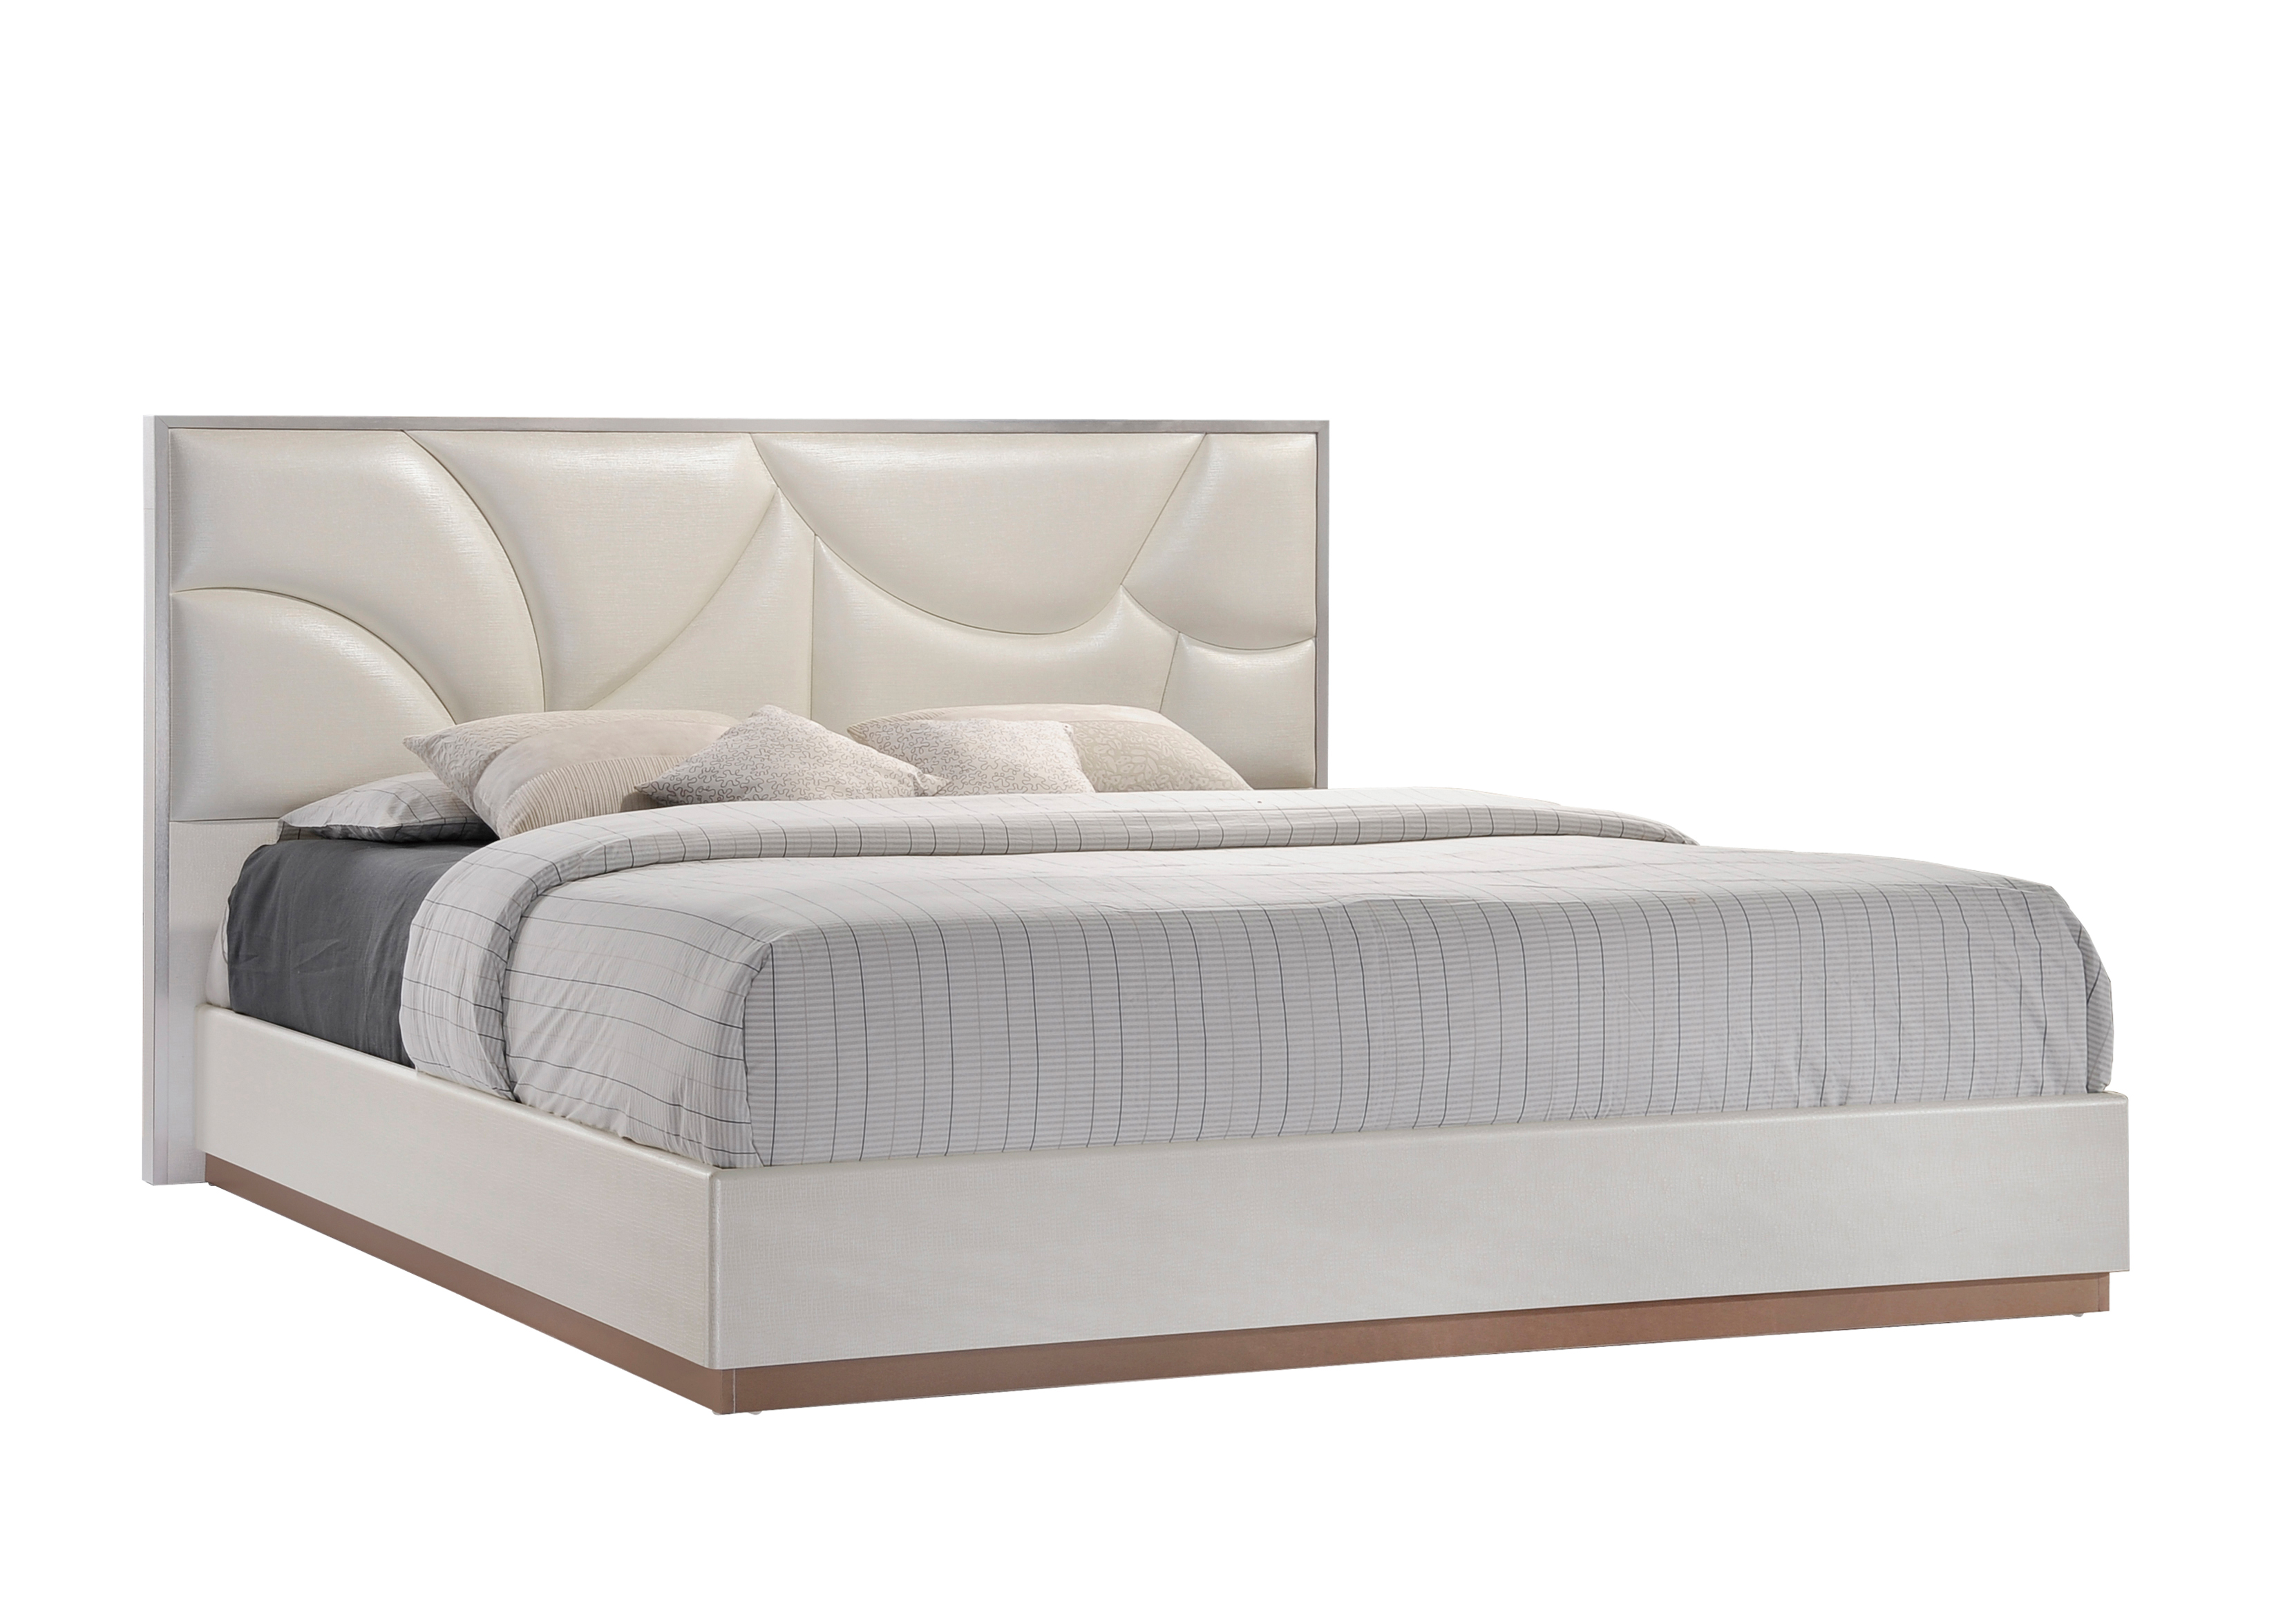 Paris Leather Cream Bedroom Set By Global Furniture